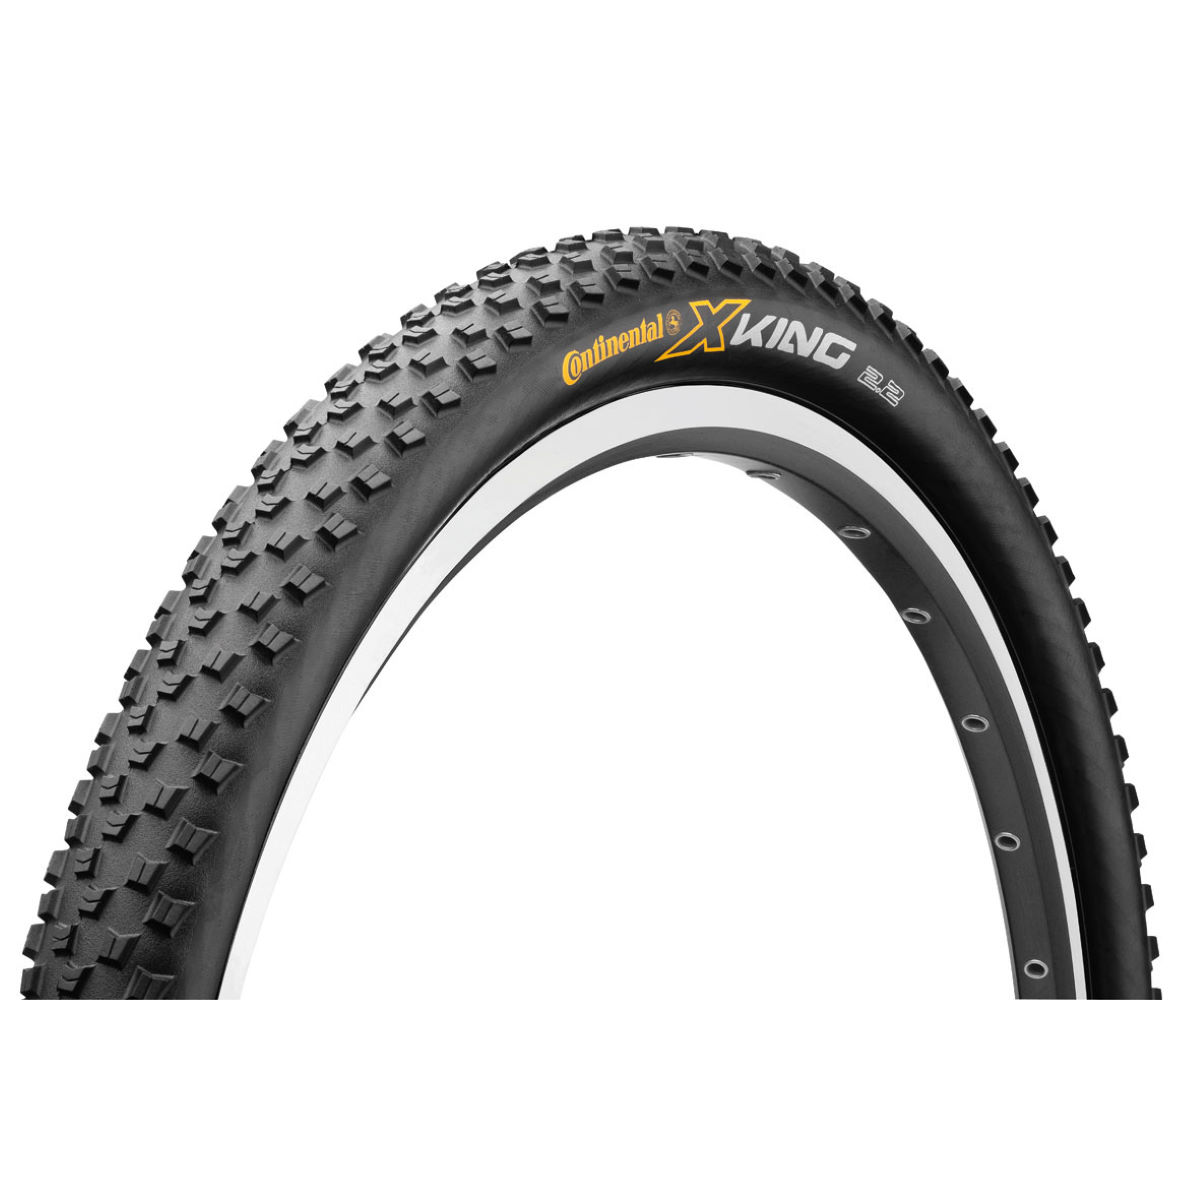 Pneu VTT Continental X-King Pure Grip (souple) - 2.2' 26' Noir/Noir